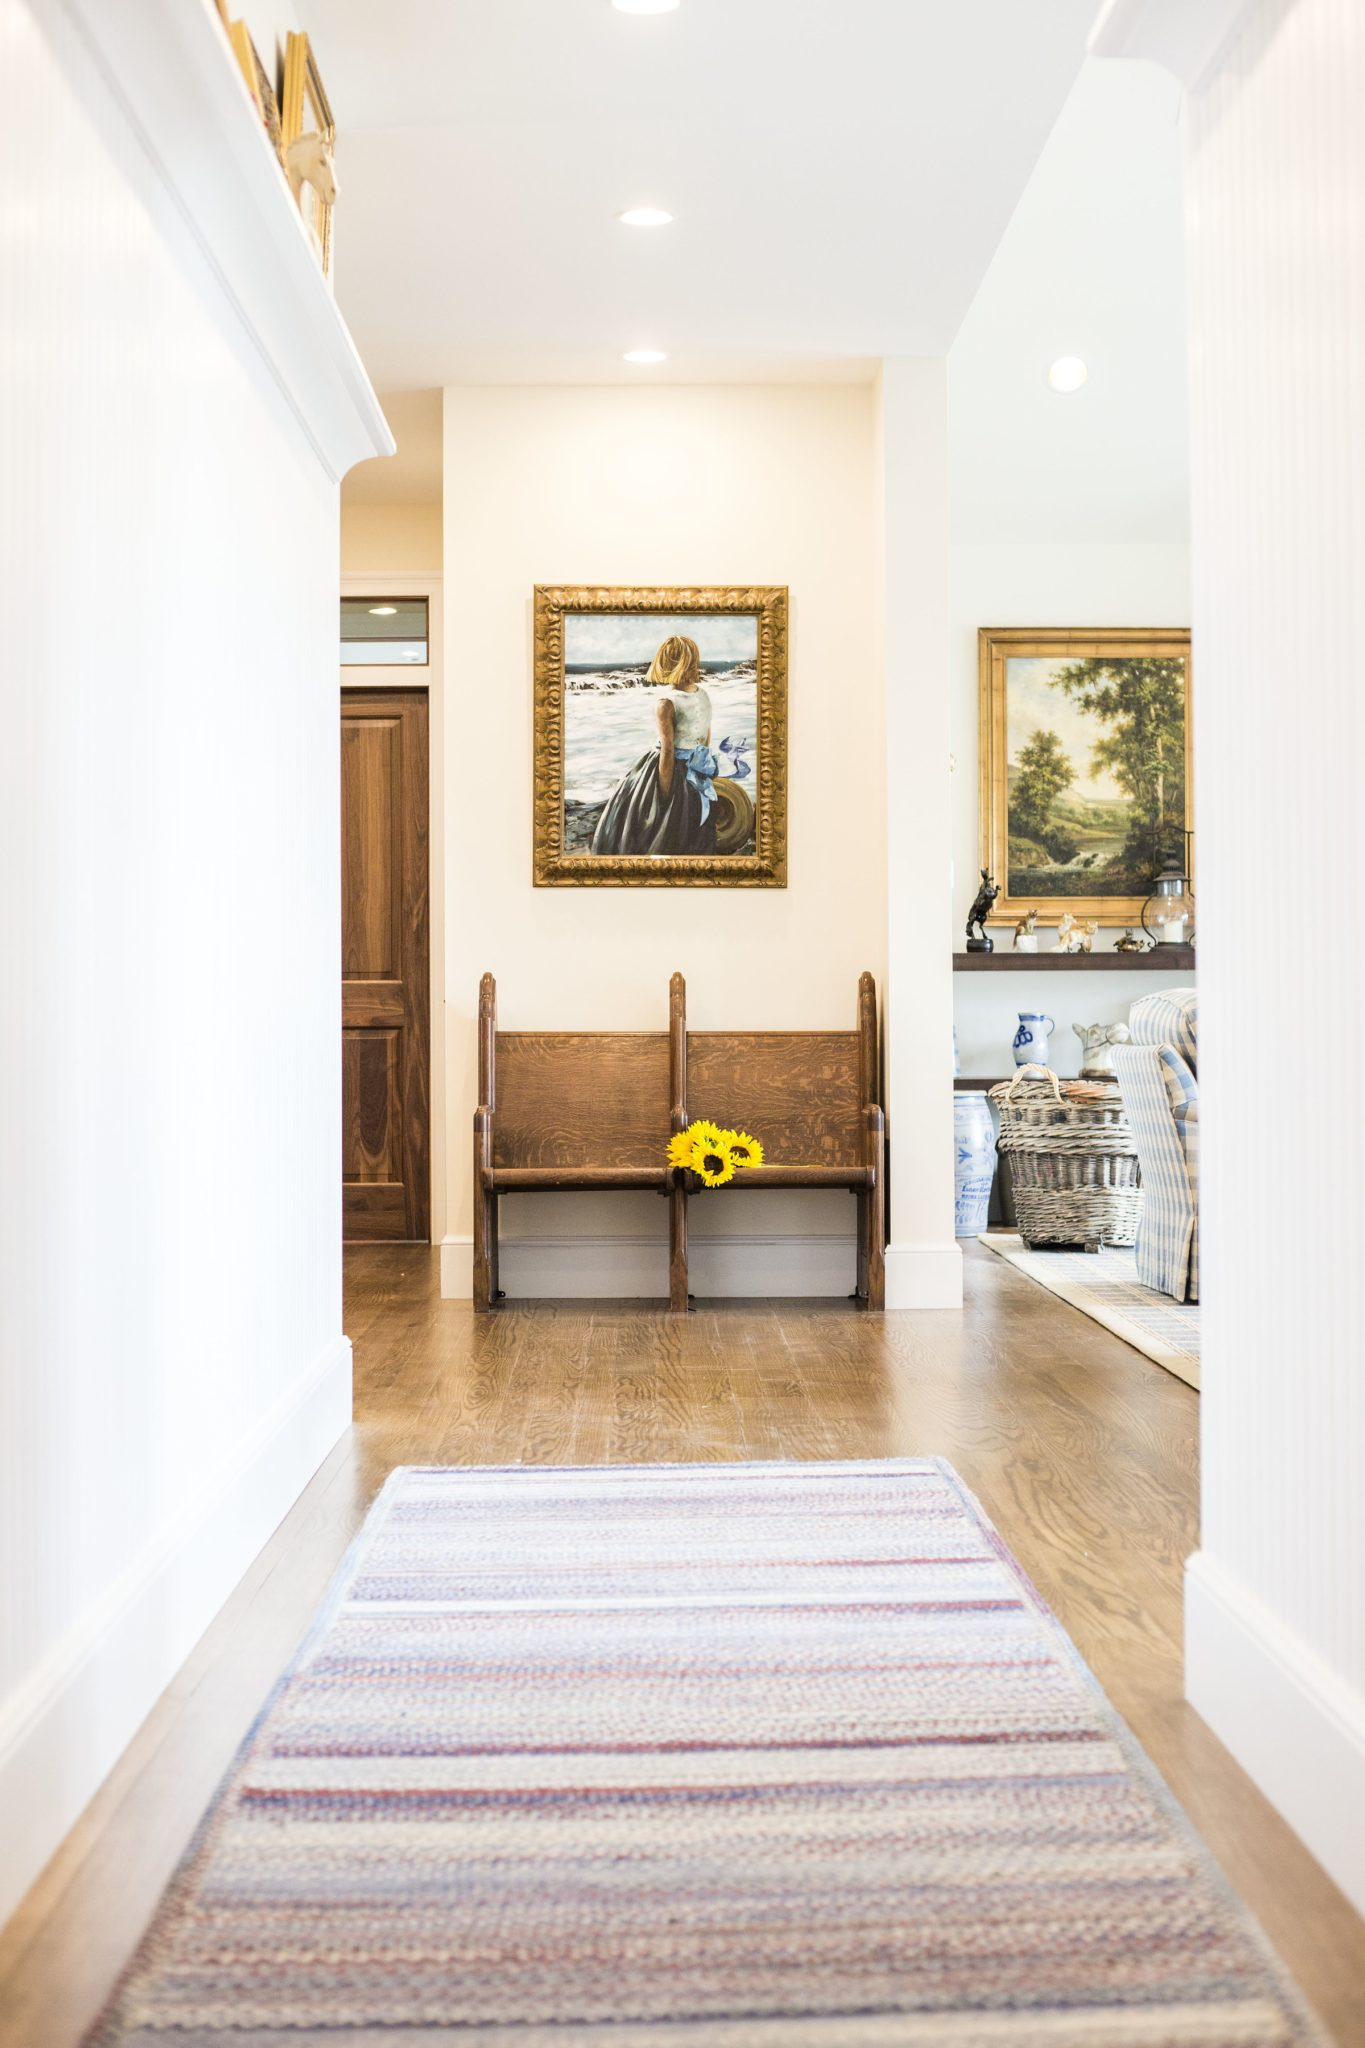 Farmhouse, Hallway Leading to Antique Church Pew and Bright Artwork by LSM Interior Design